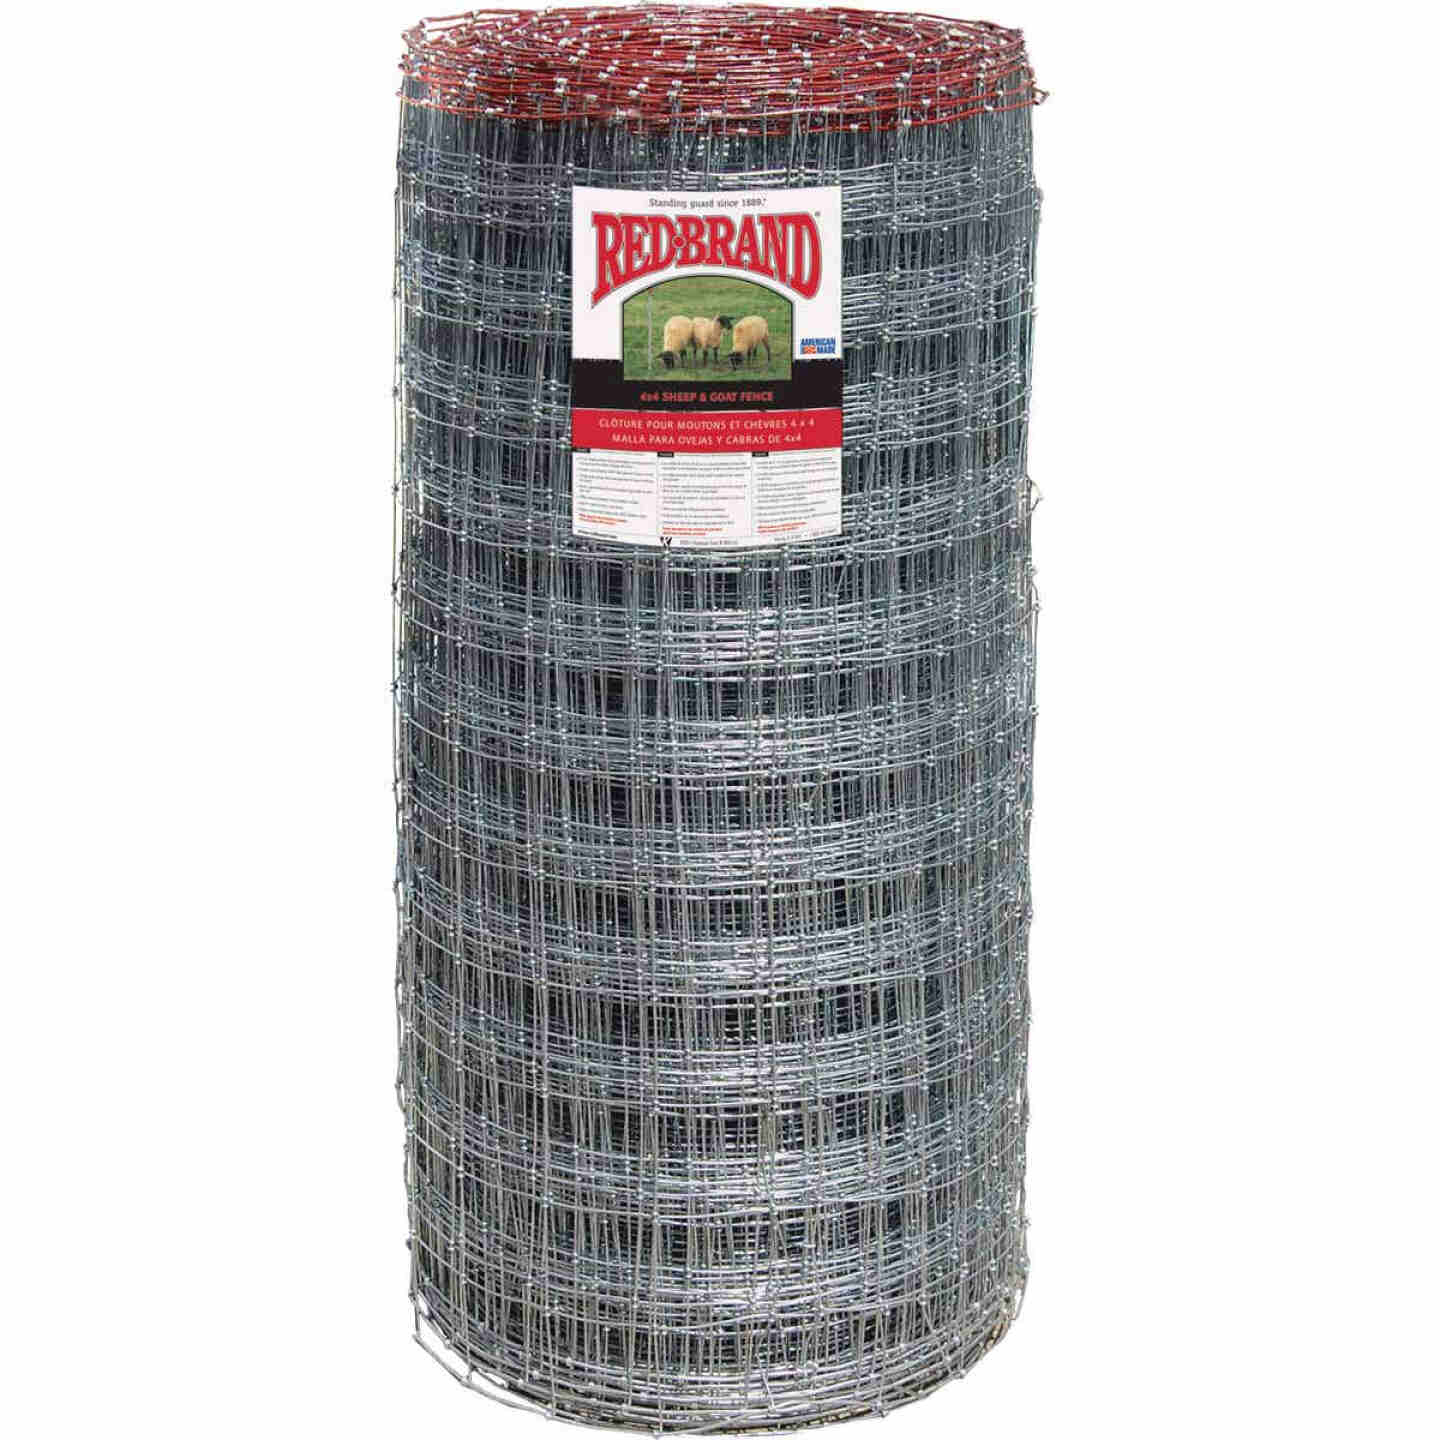 Keystone Red Brand Square Deal Knot 48 In. H. x 330 Ft. L. Galvanized Steel Sheep & Goat Fence Image 1